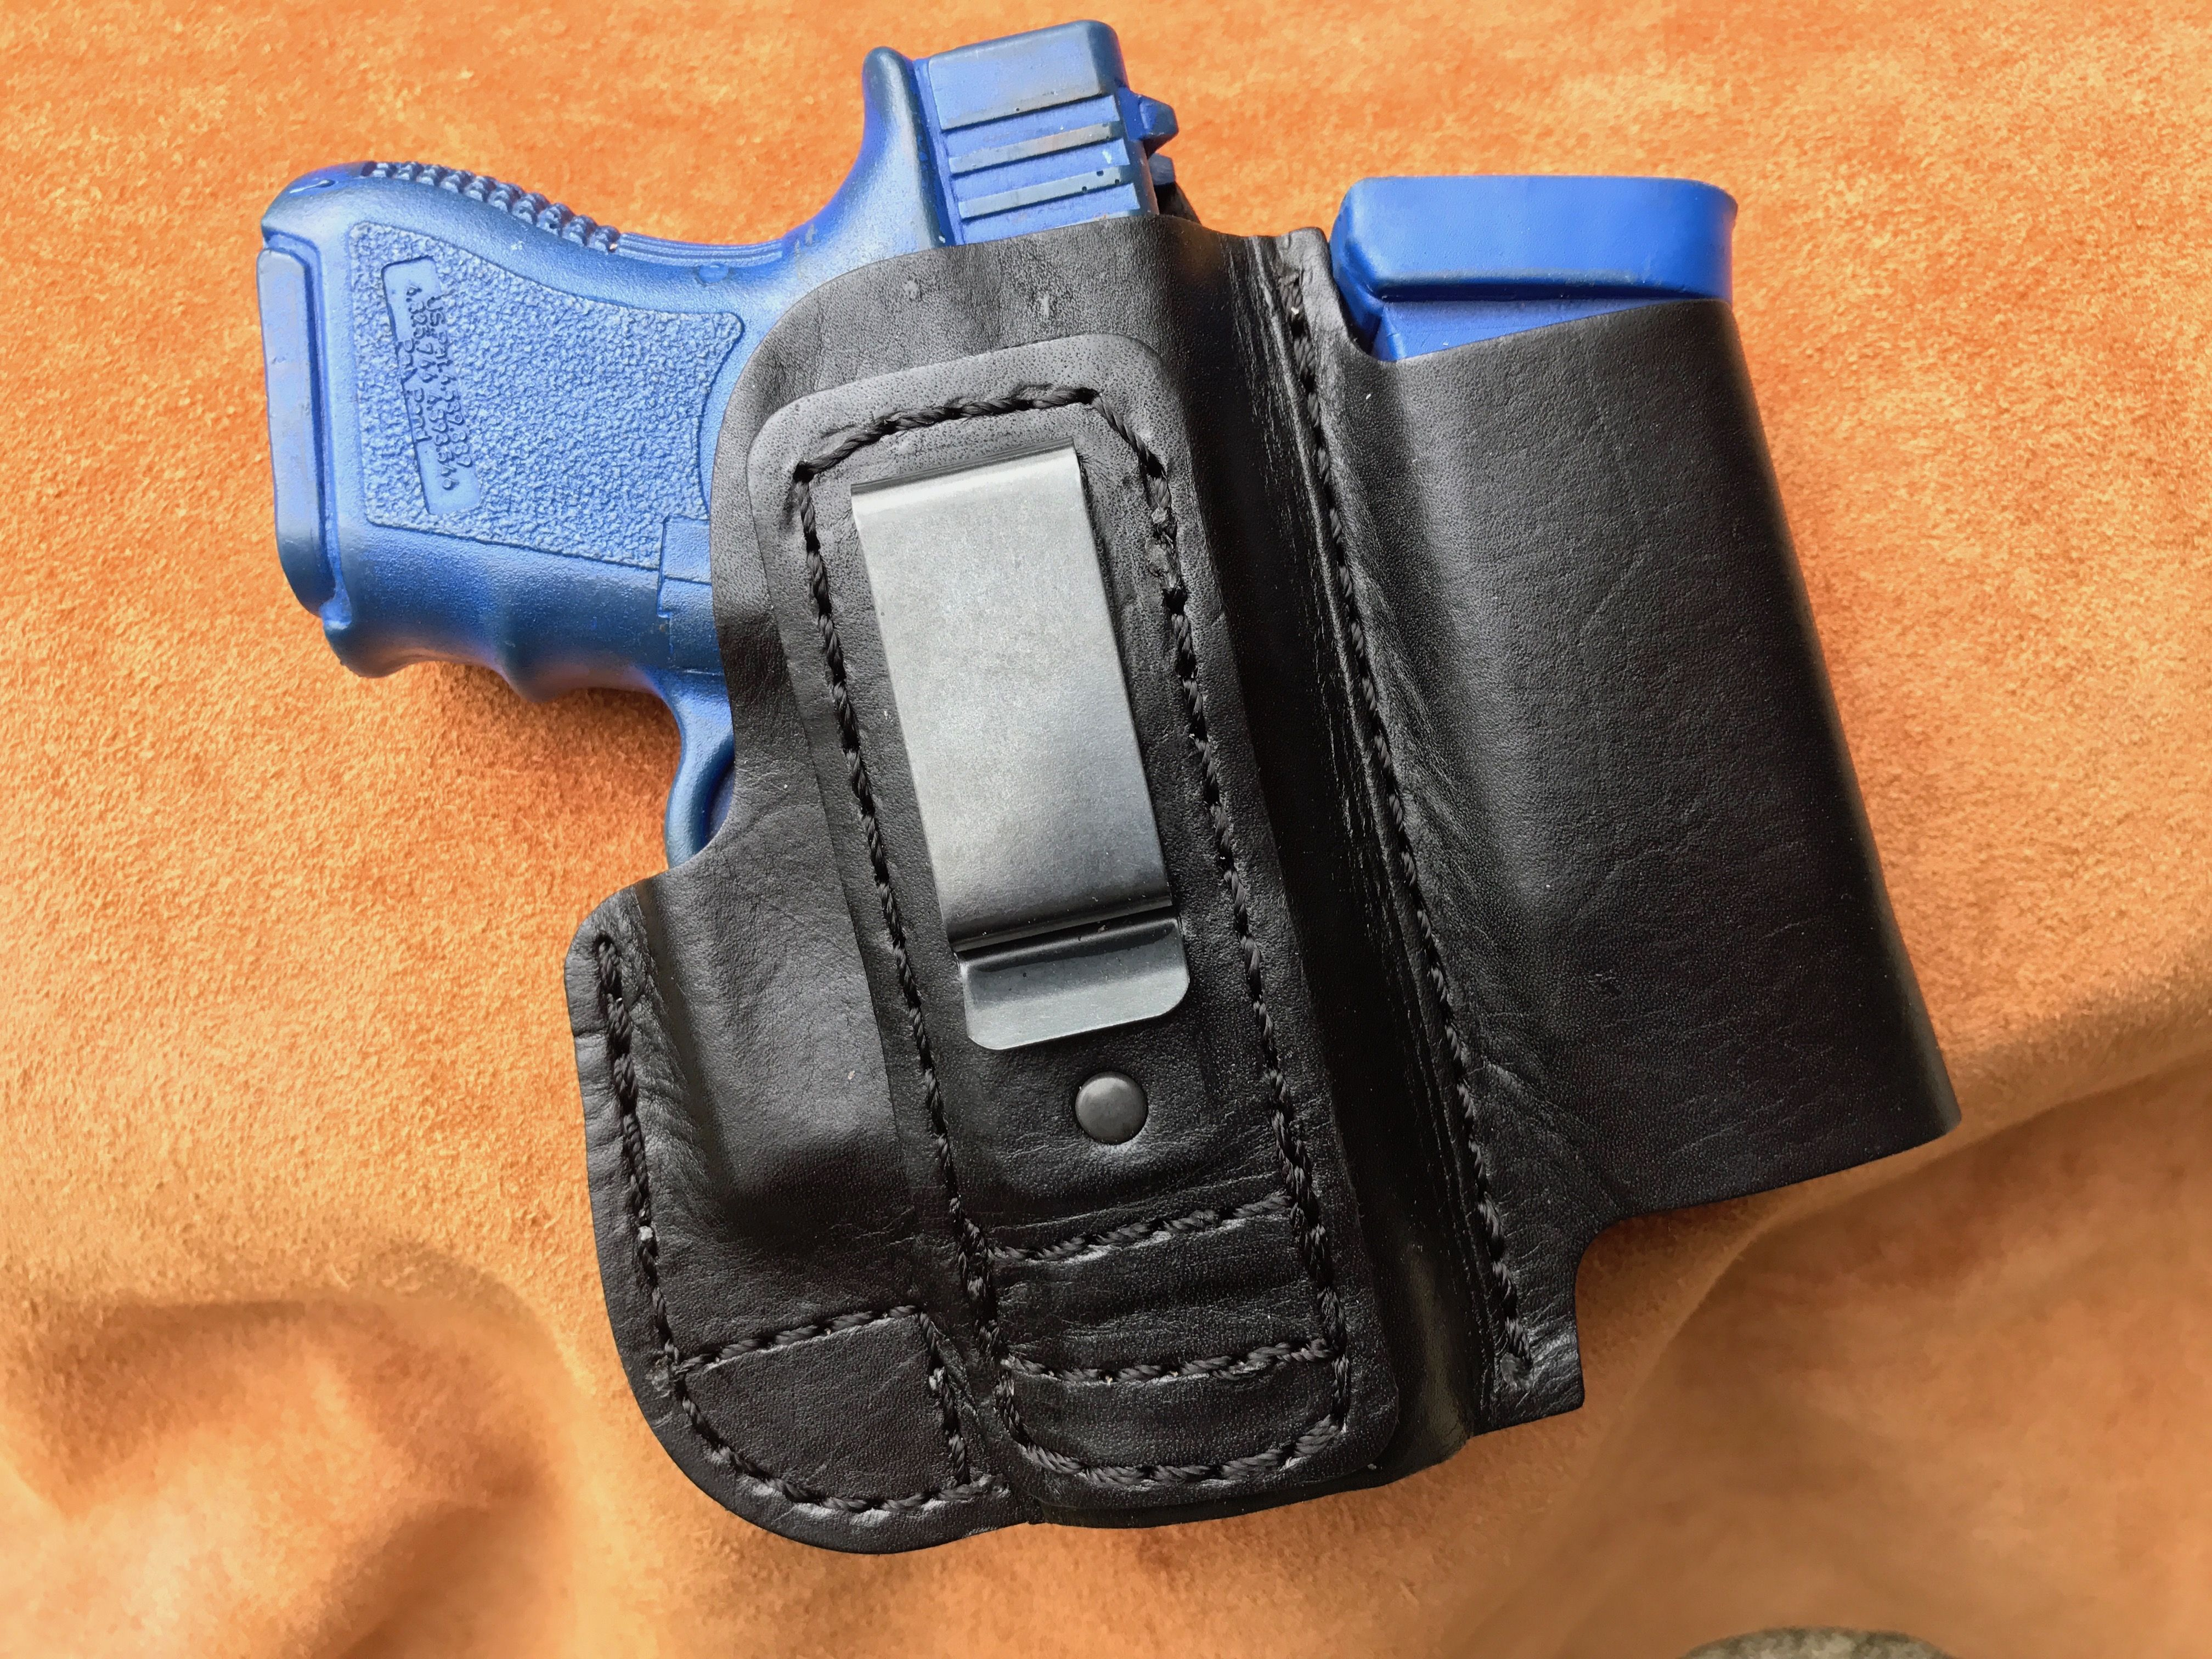 Concealed Carry Magazine Holder Conceal Carry Tuckable IWB Holster w Magazine Pouch HOLSTER41 28